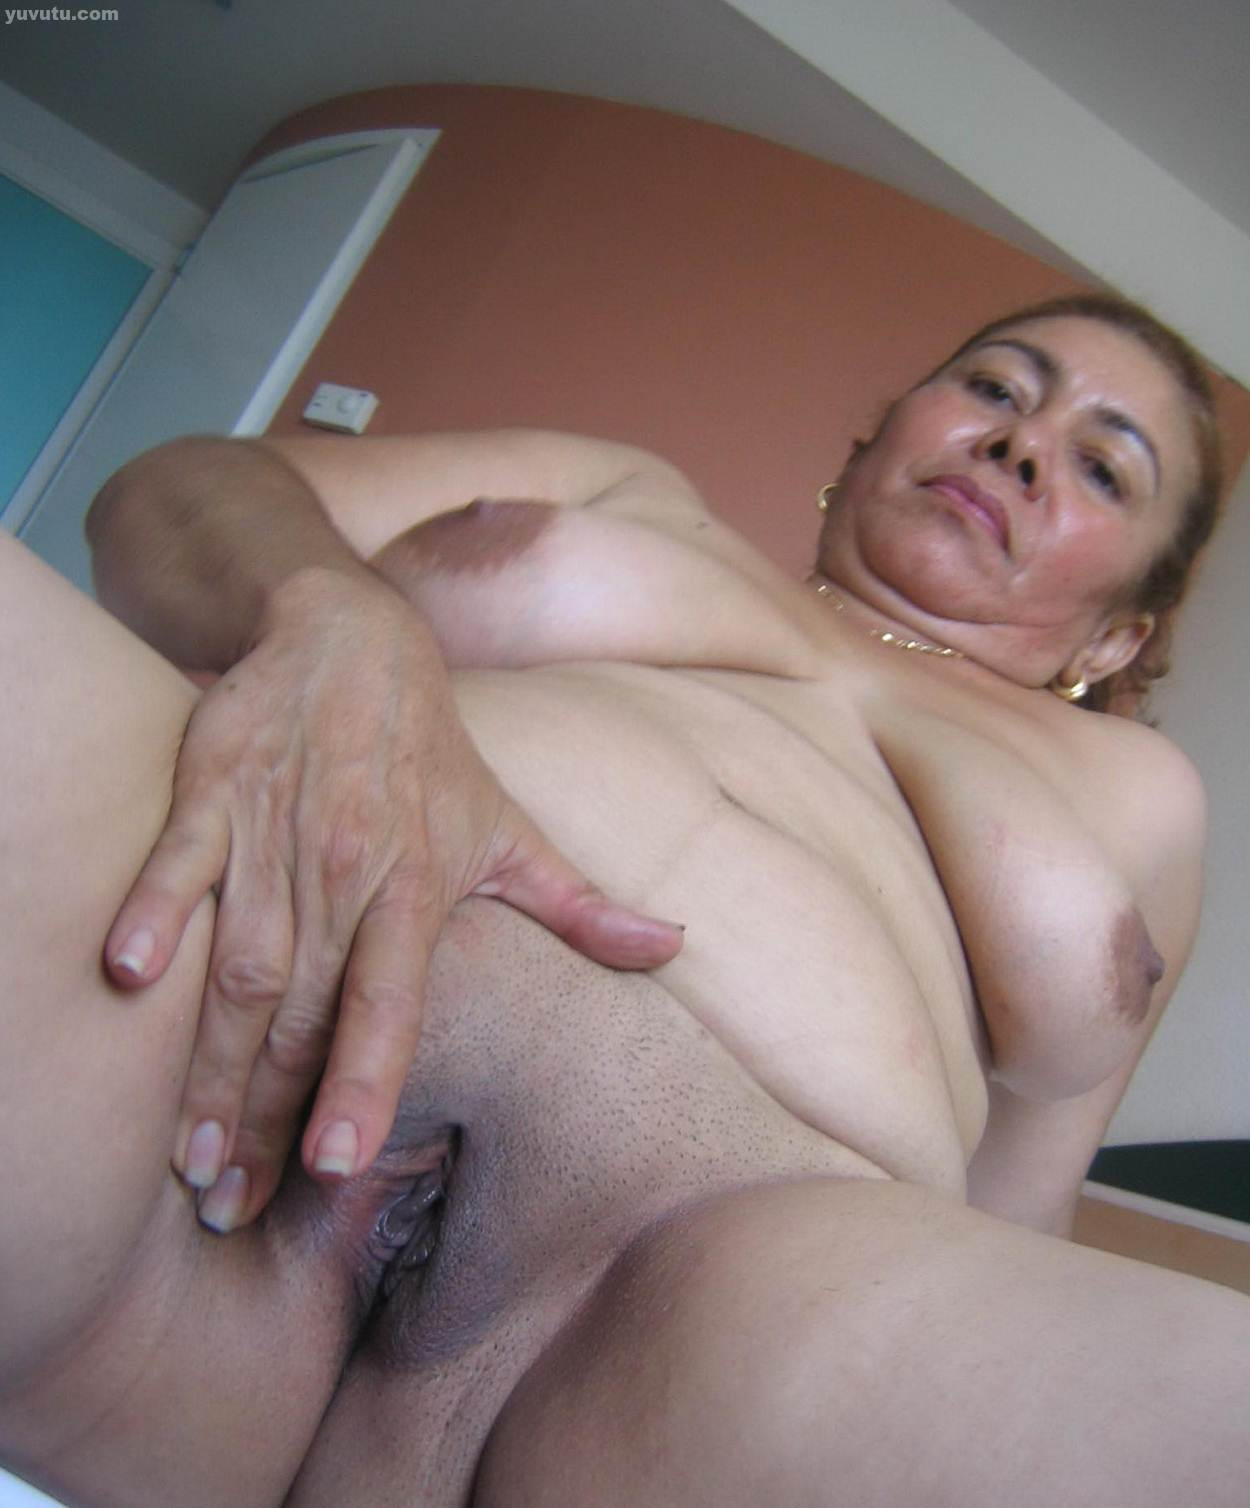 married woman looking sex